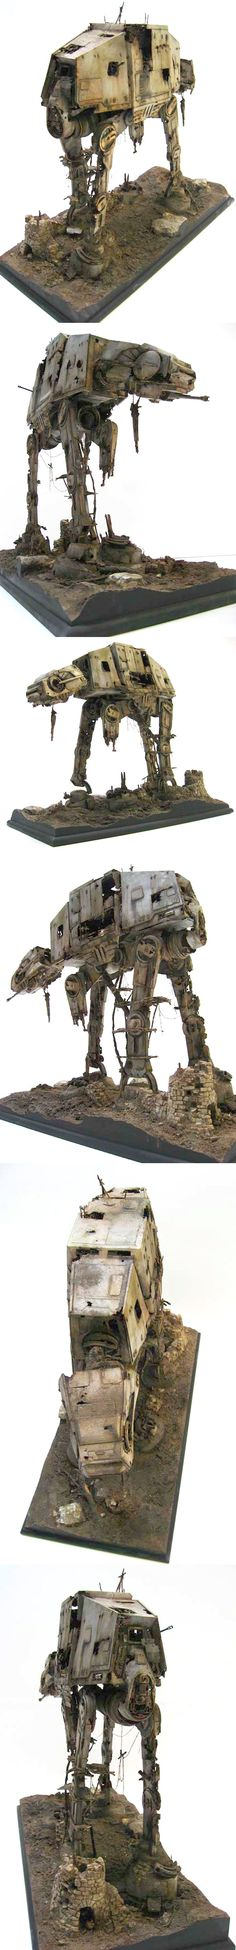 AT-AT 1/35 Scale Model Diorama. This is a pretty fantastic diorama.